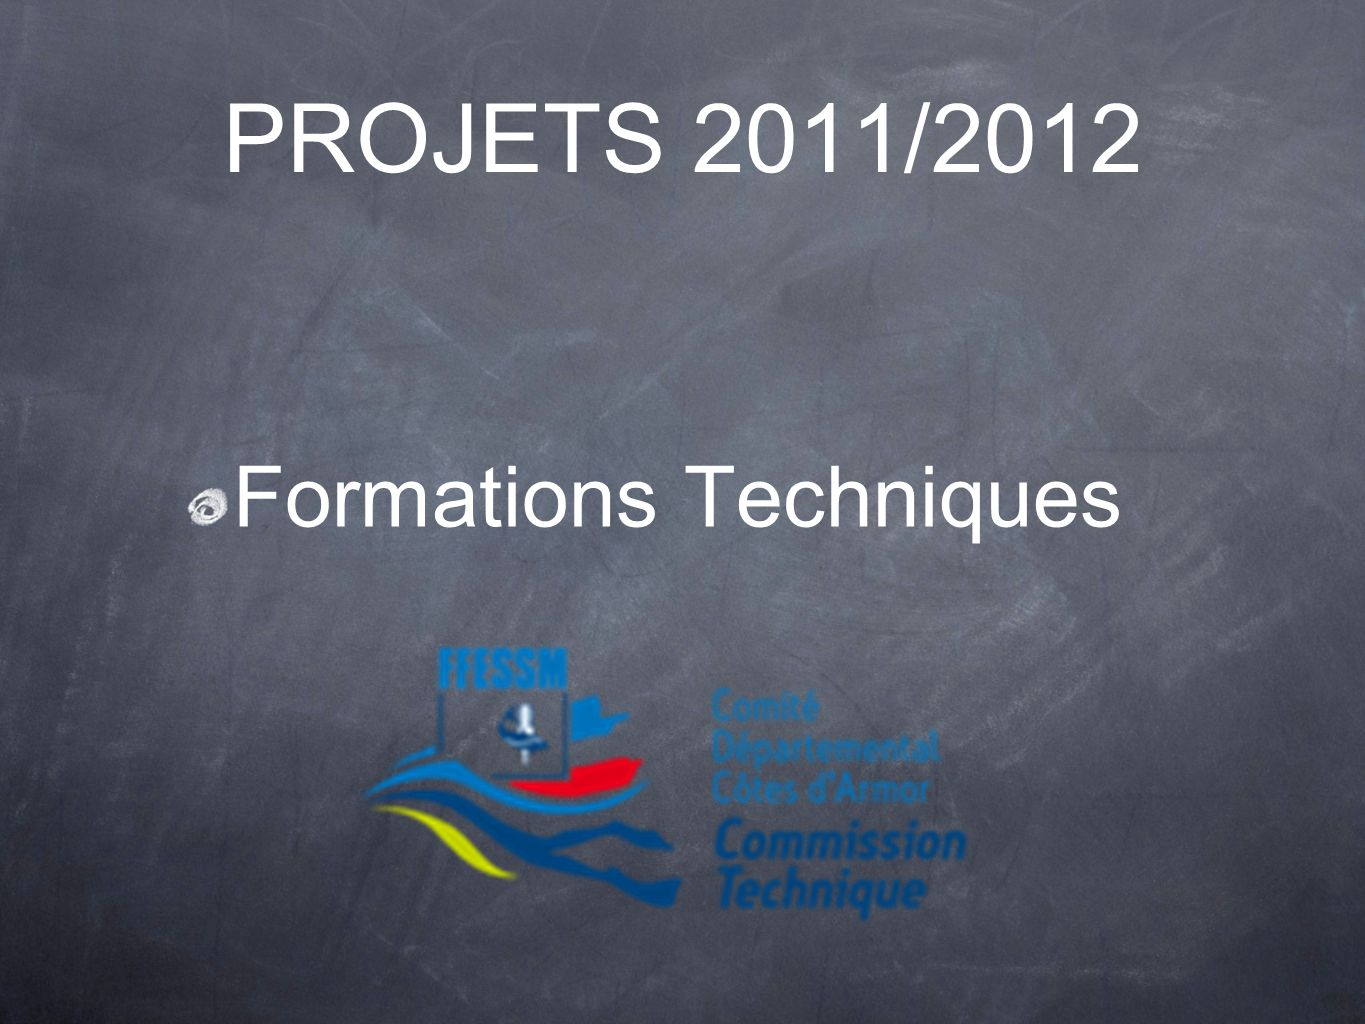 PROJETS 2011/2012 Formations Techniques